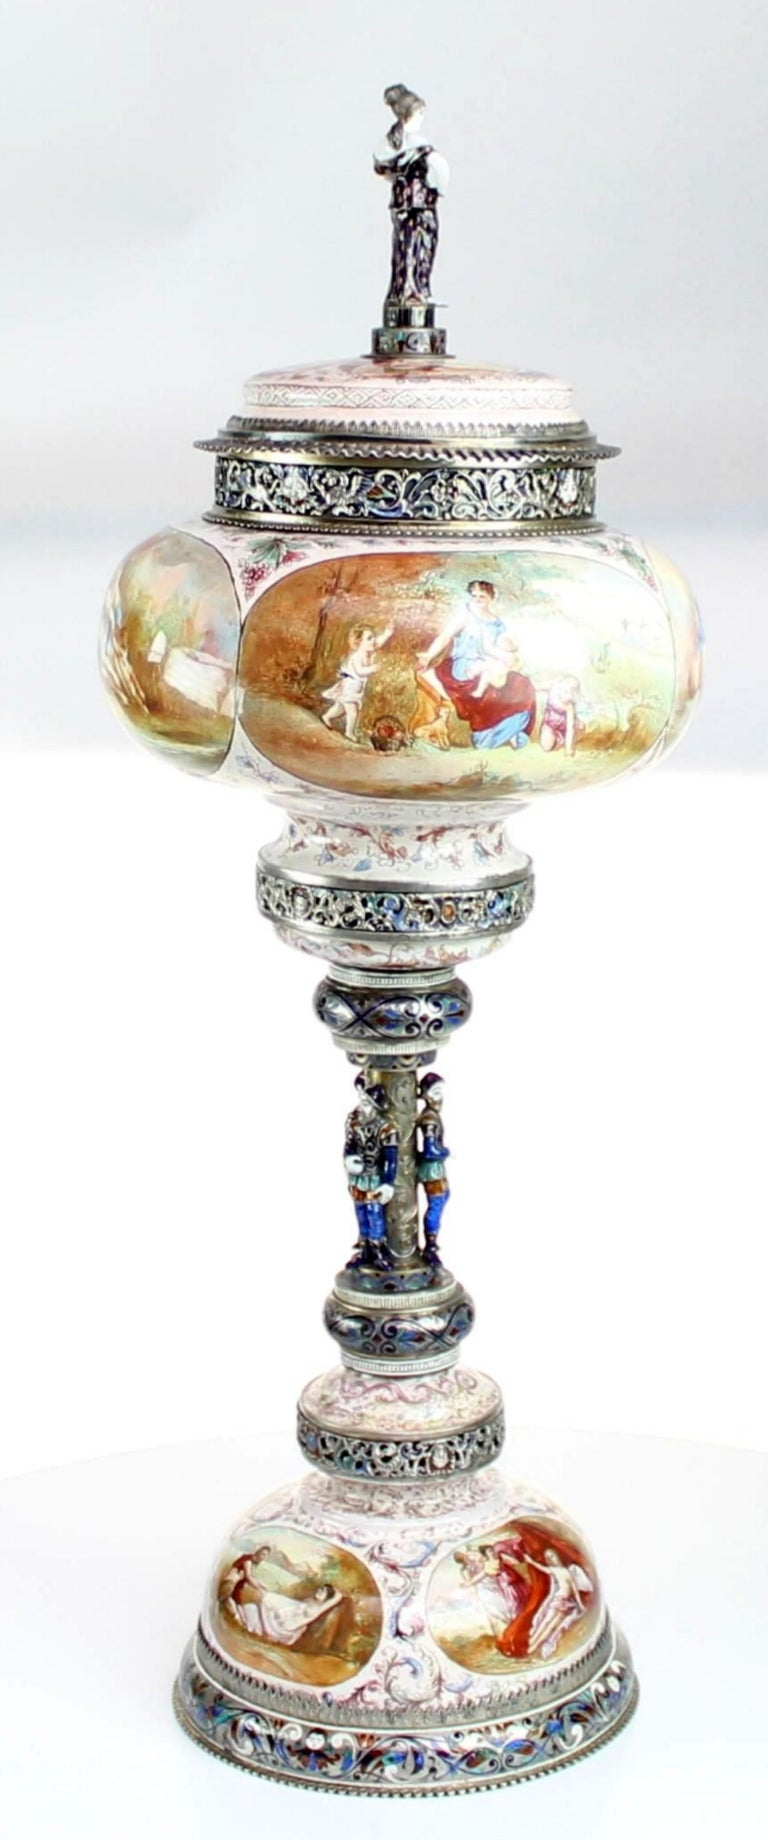 Magnificent large silver and Viennese enamel cup and cover by Hermann Bohm, Vienna, circa 1880